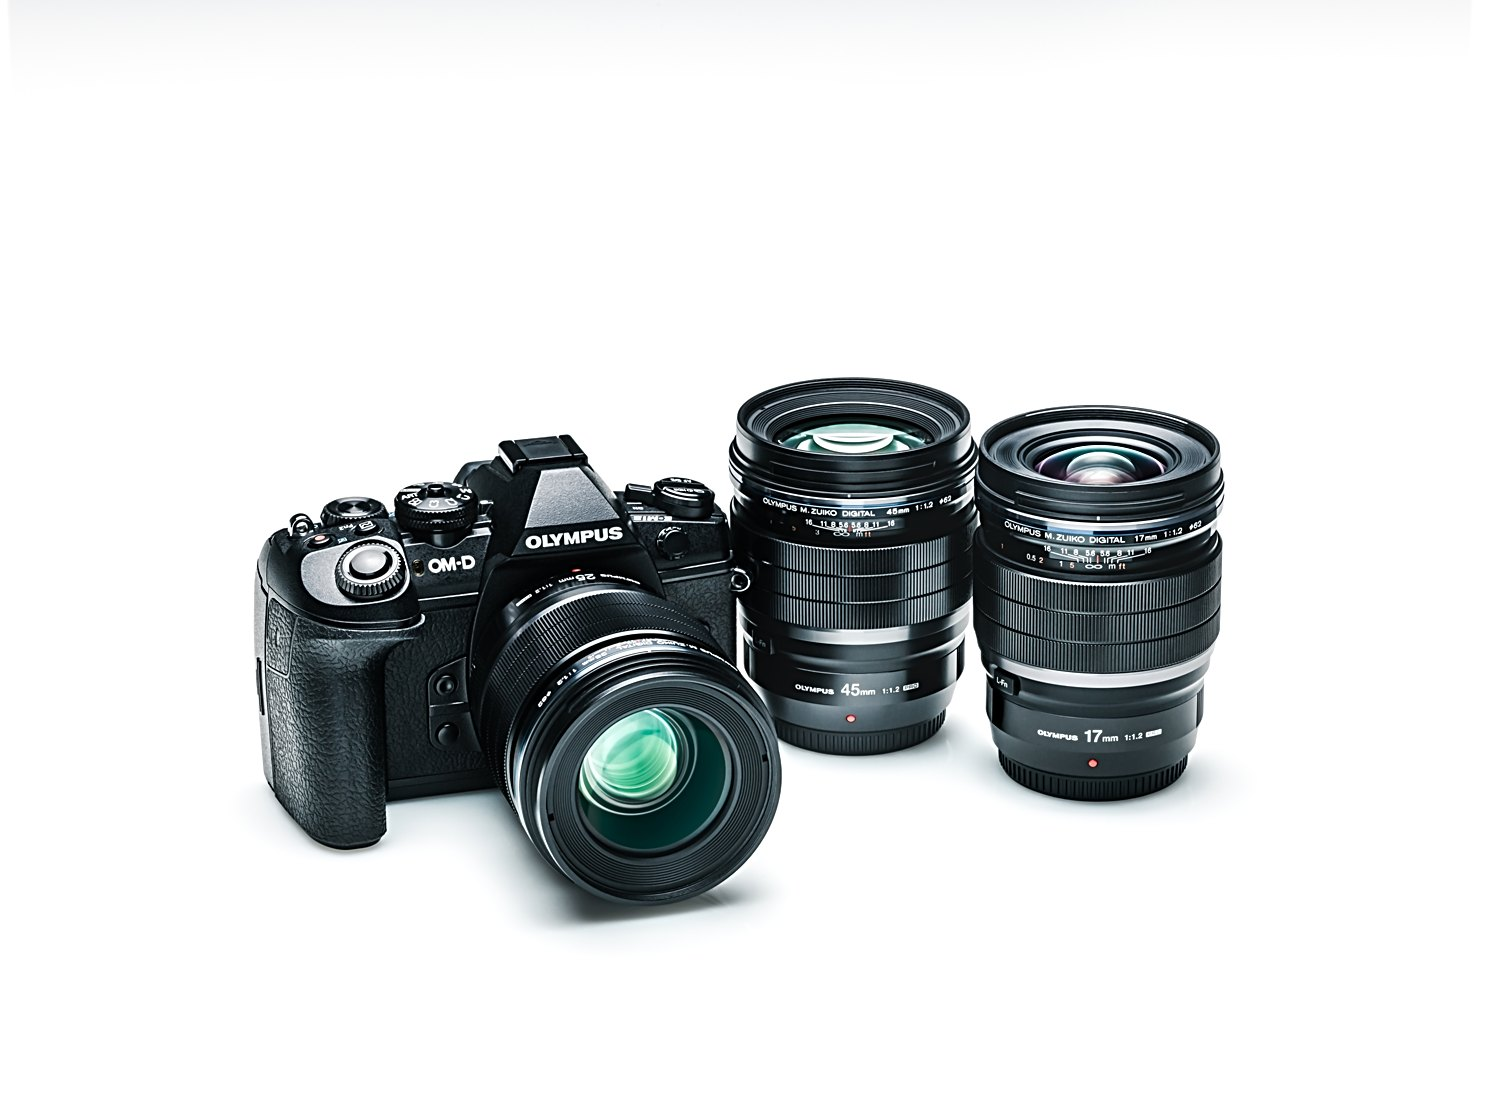 The Olympus mirrorless camera system